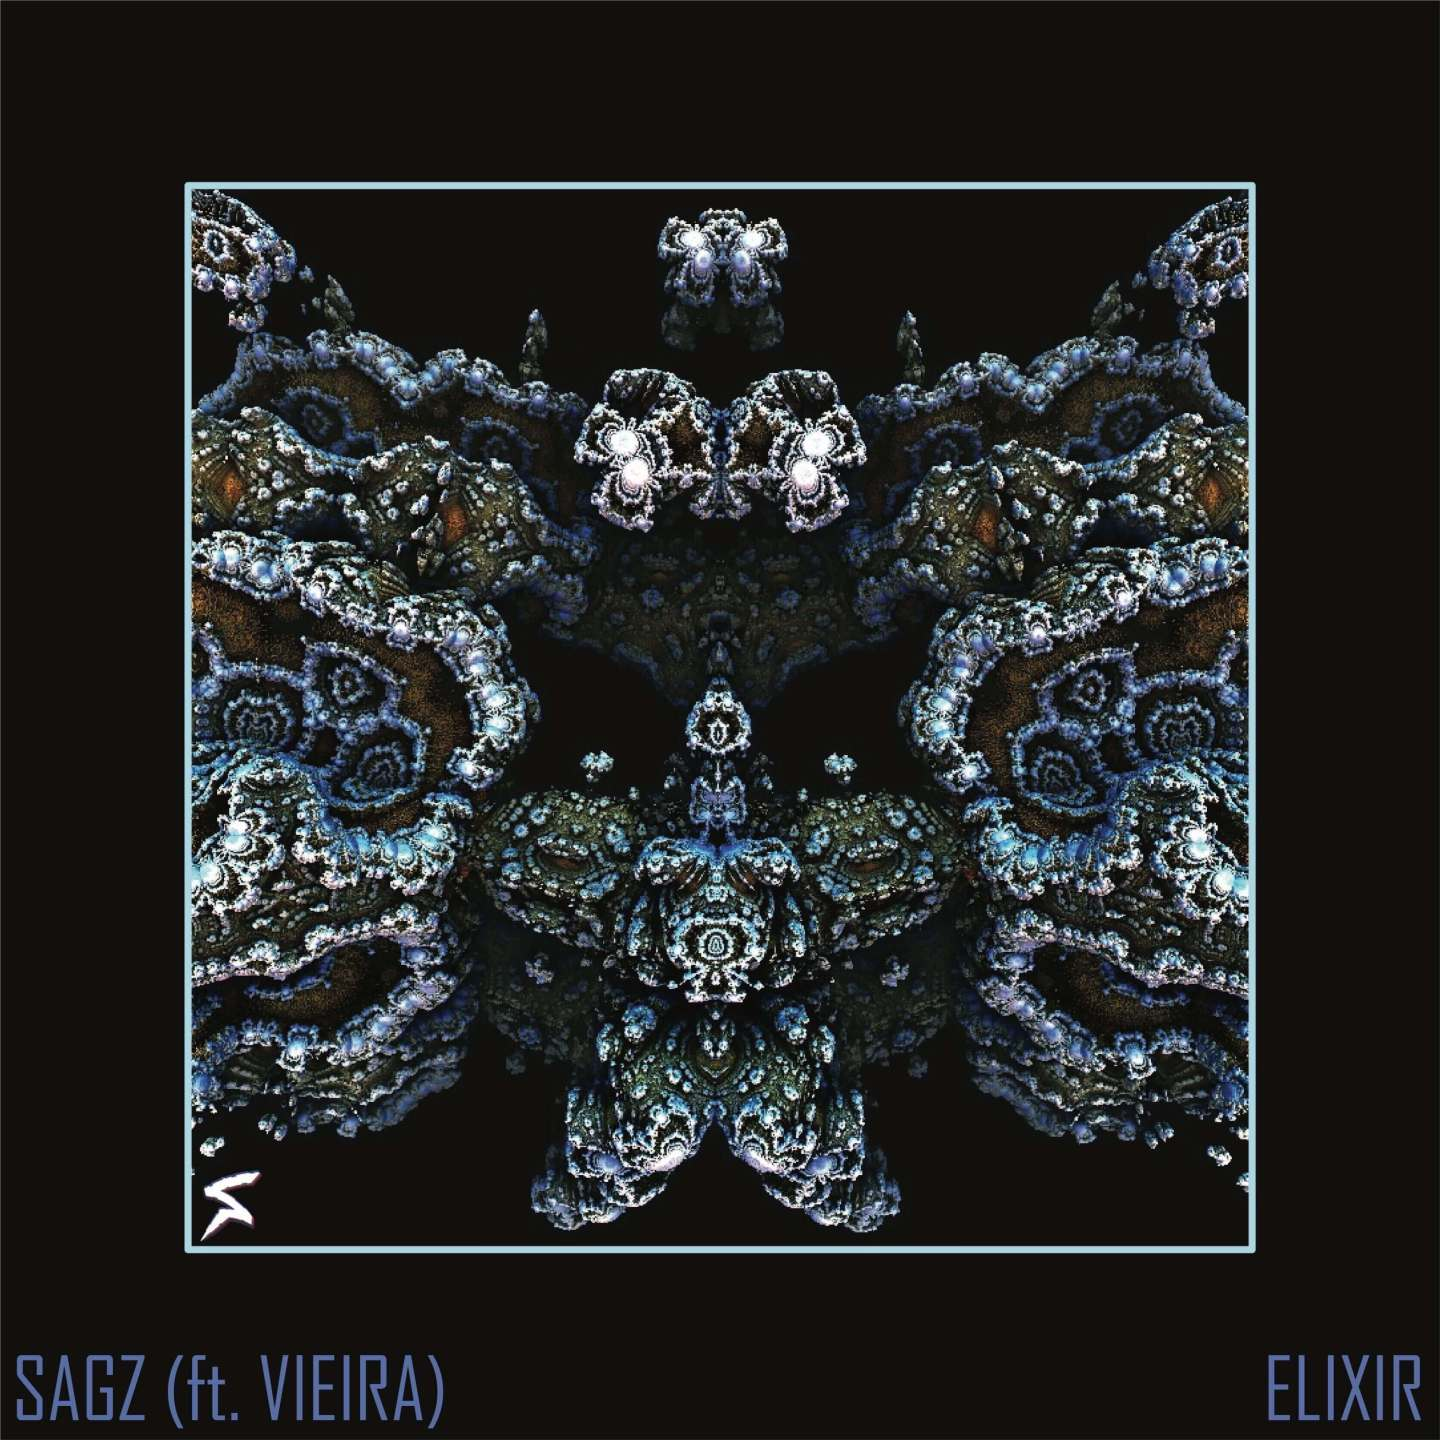 "Sagz and Vieira are chefin up an antidote for y'all. We heard from a reliable source that you were needing a hefty dosage of bass in your life. ""Elixir"""